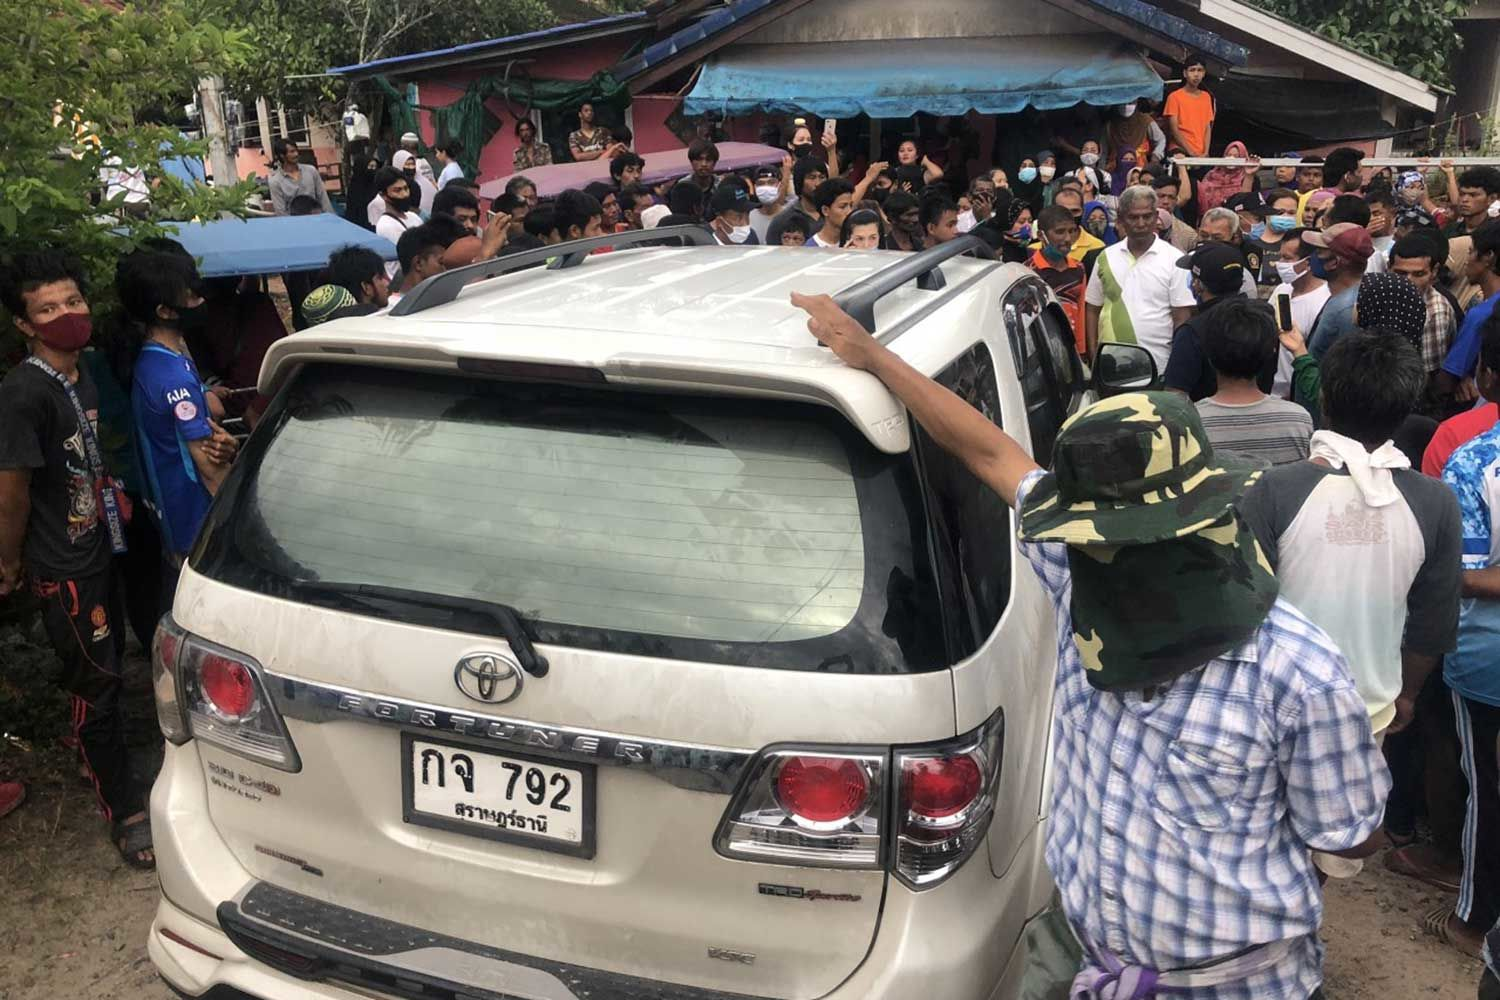 Surat Thani police extortion case - police chief promises swift and thorough investigation | News by Thaiger